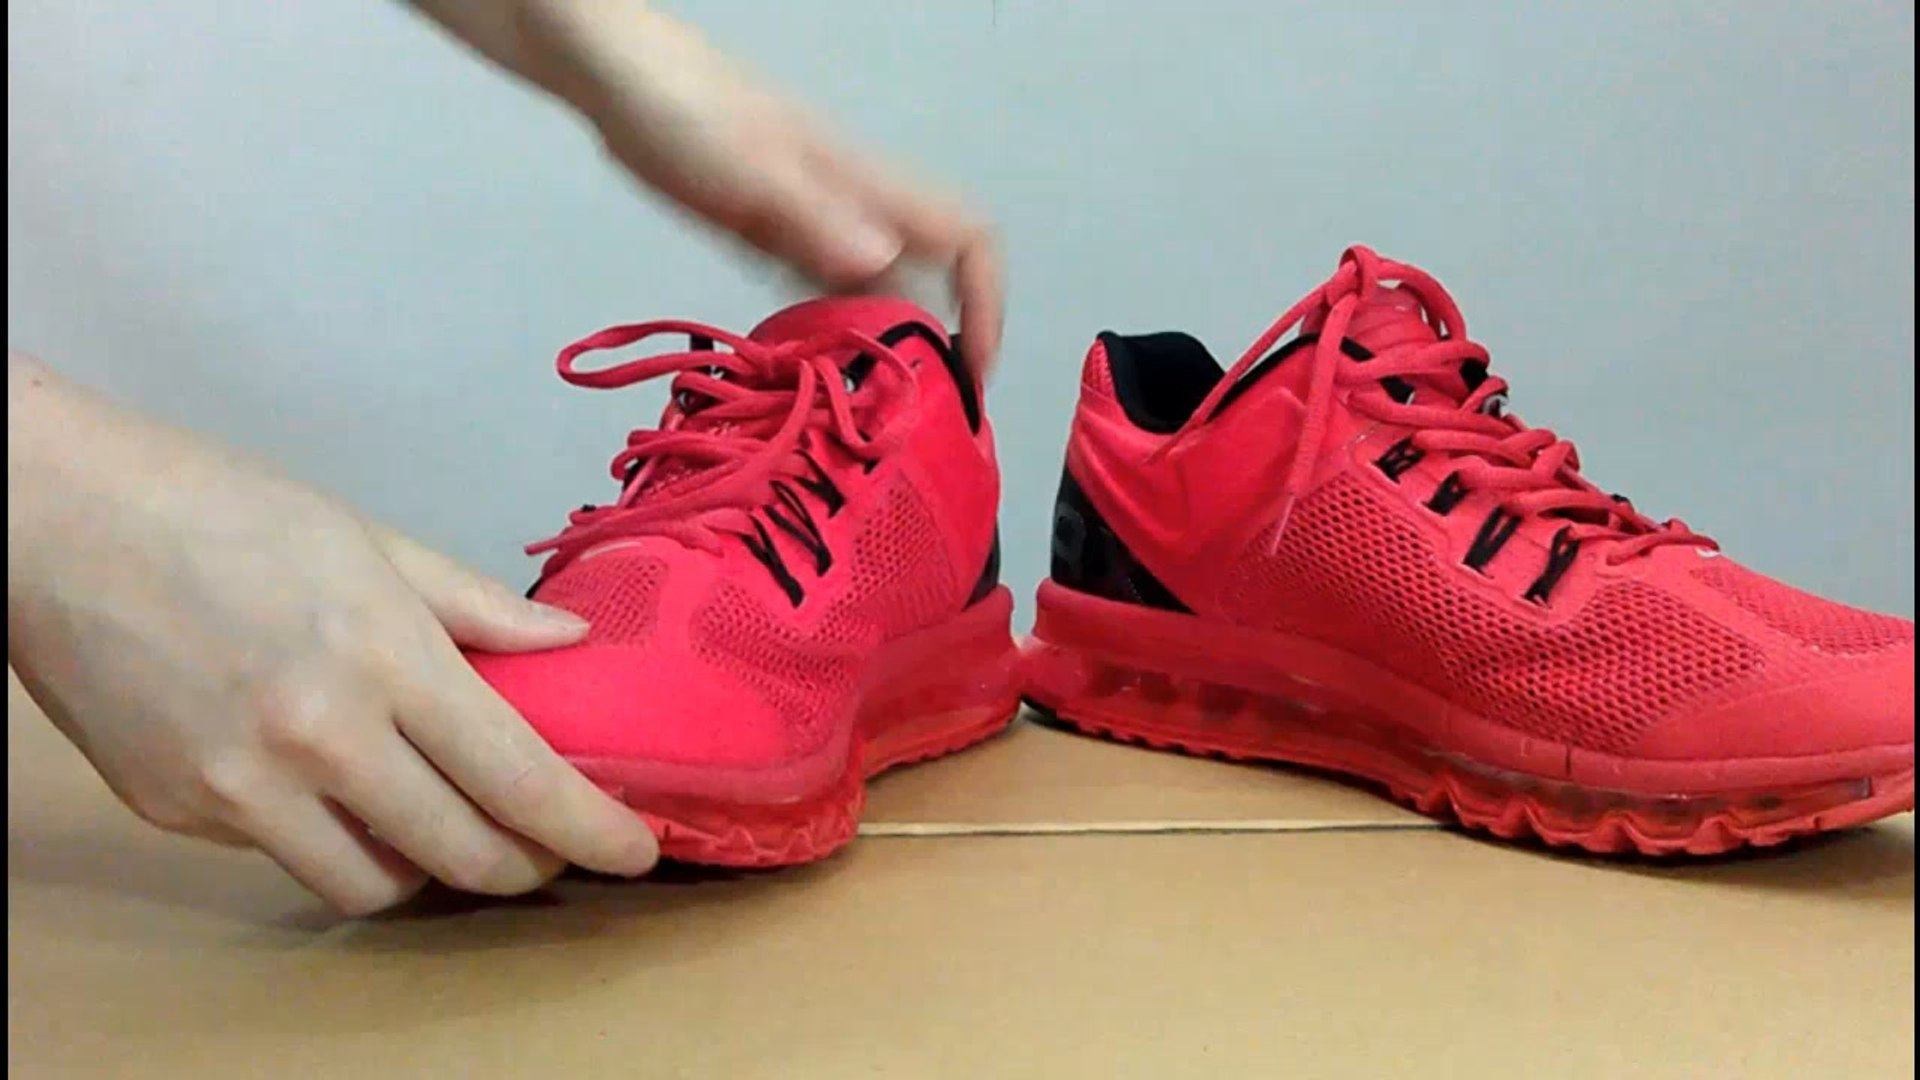 Discount Air max 2014 PIMENTO red cheap wholesale shoes review